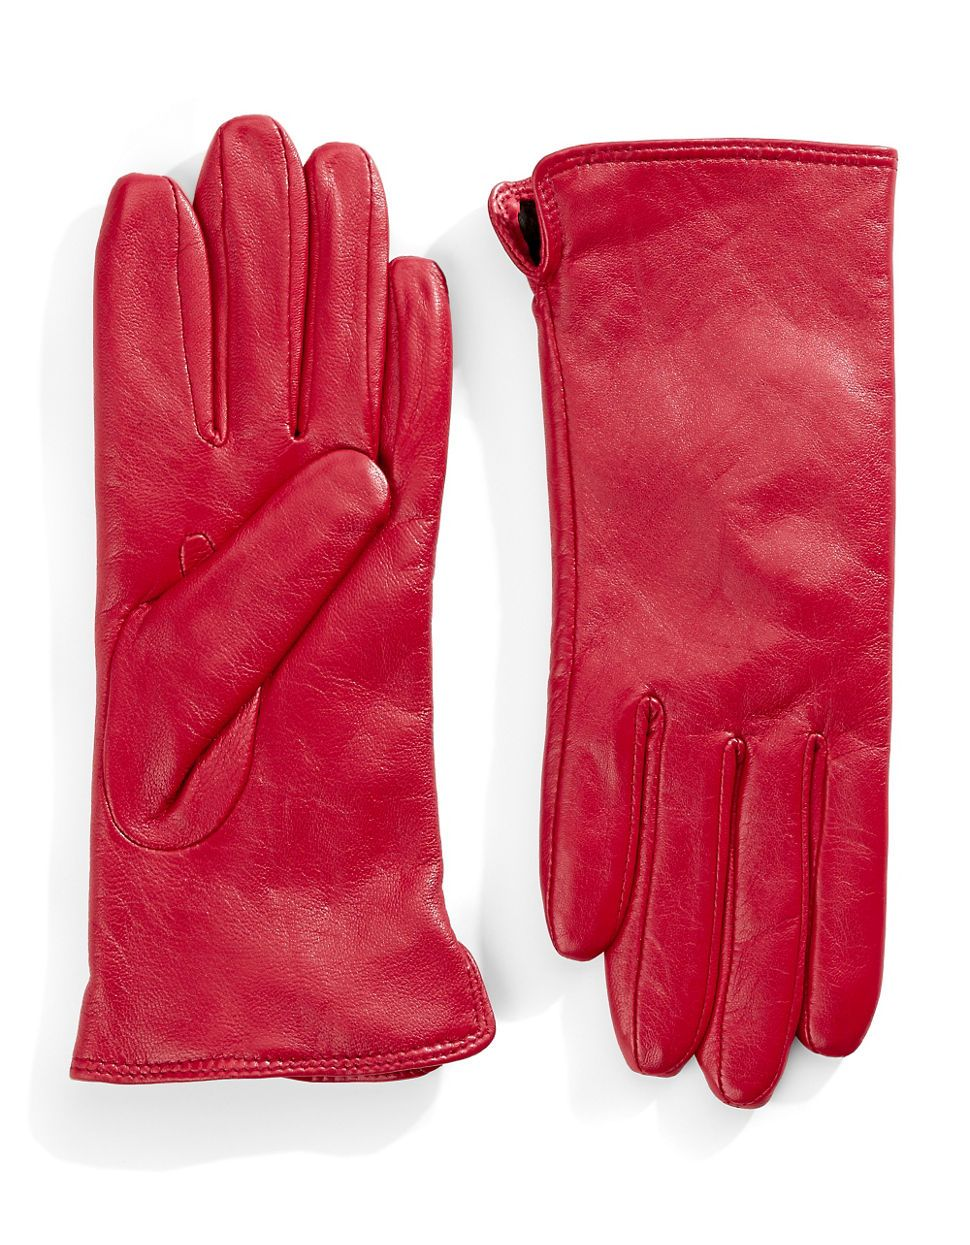 Jewellery & Accessories | Gloves | Faux Fur Lined Leather Gloves | Hudson's Bay